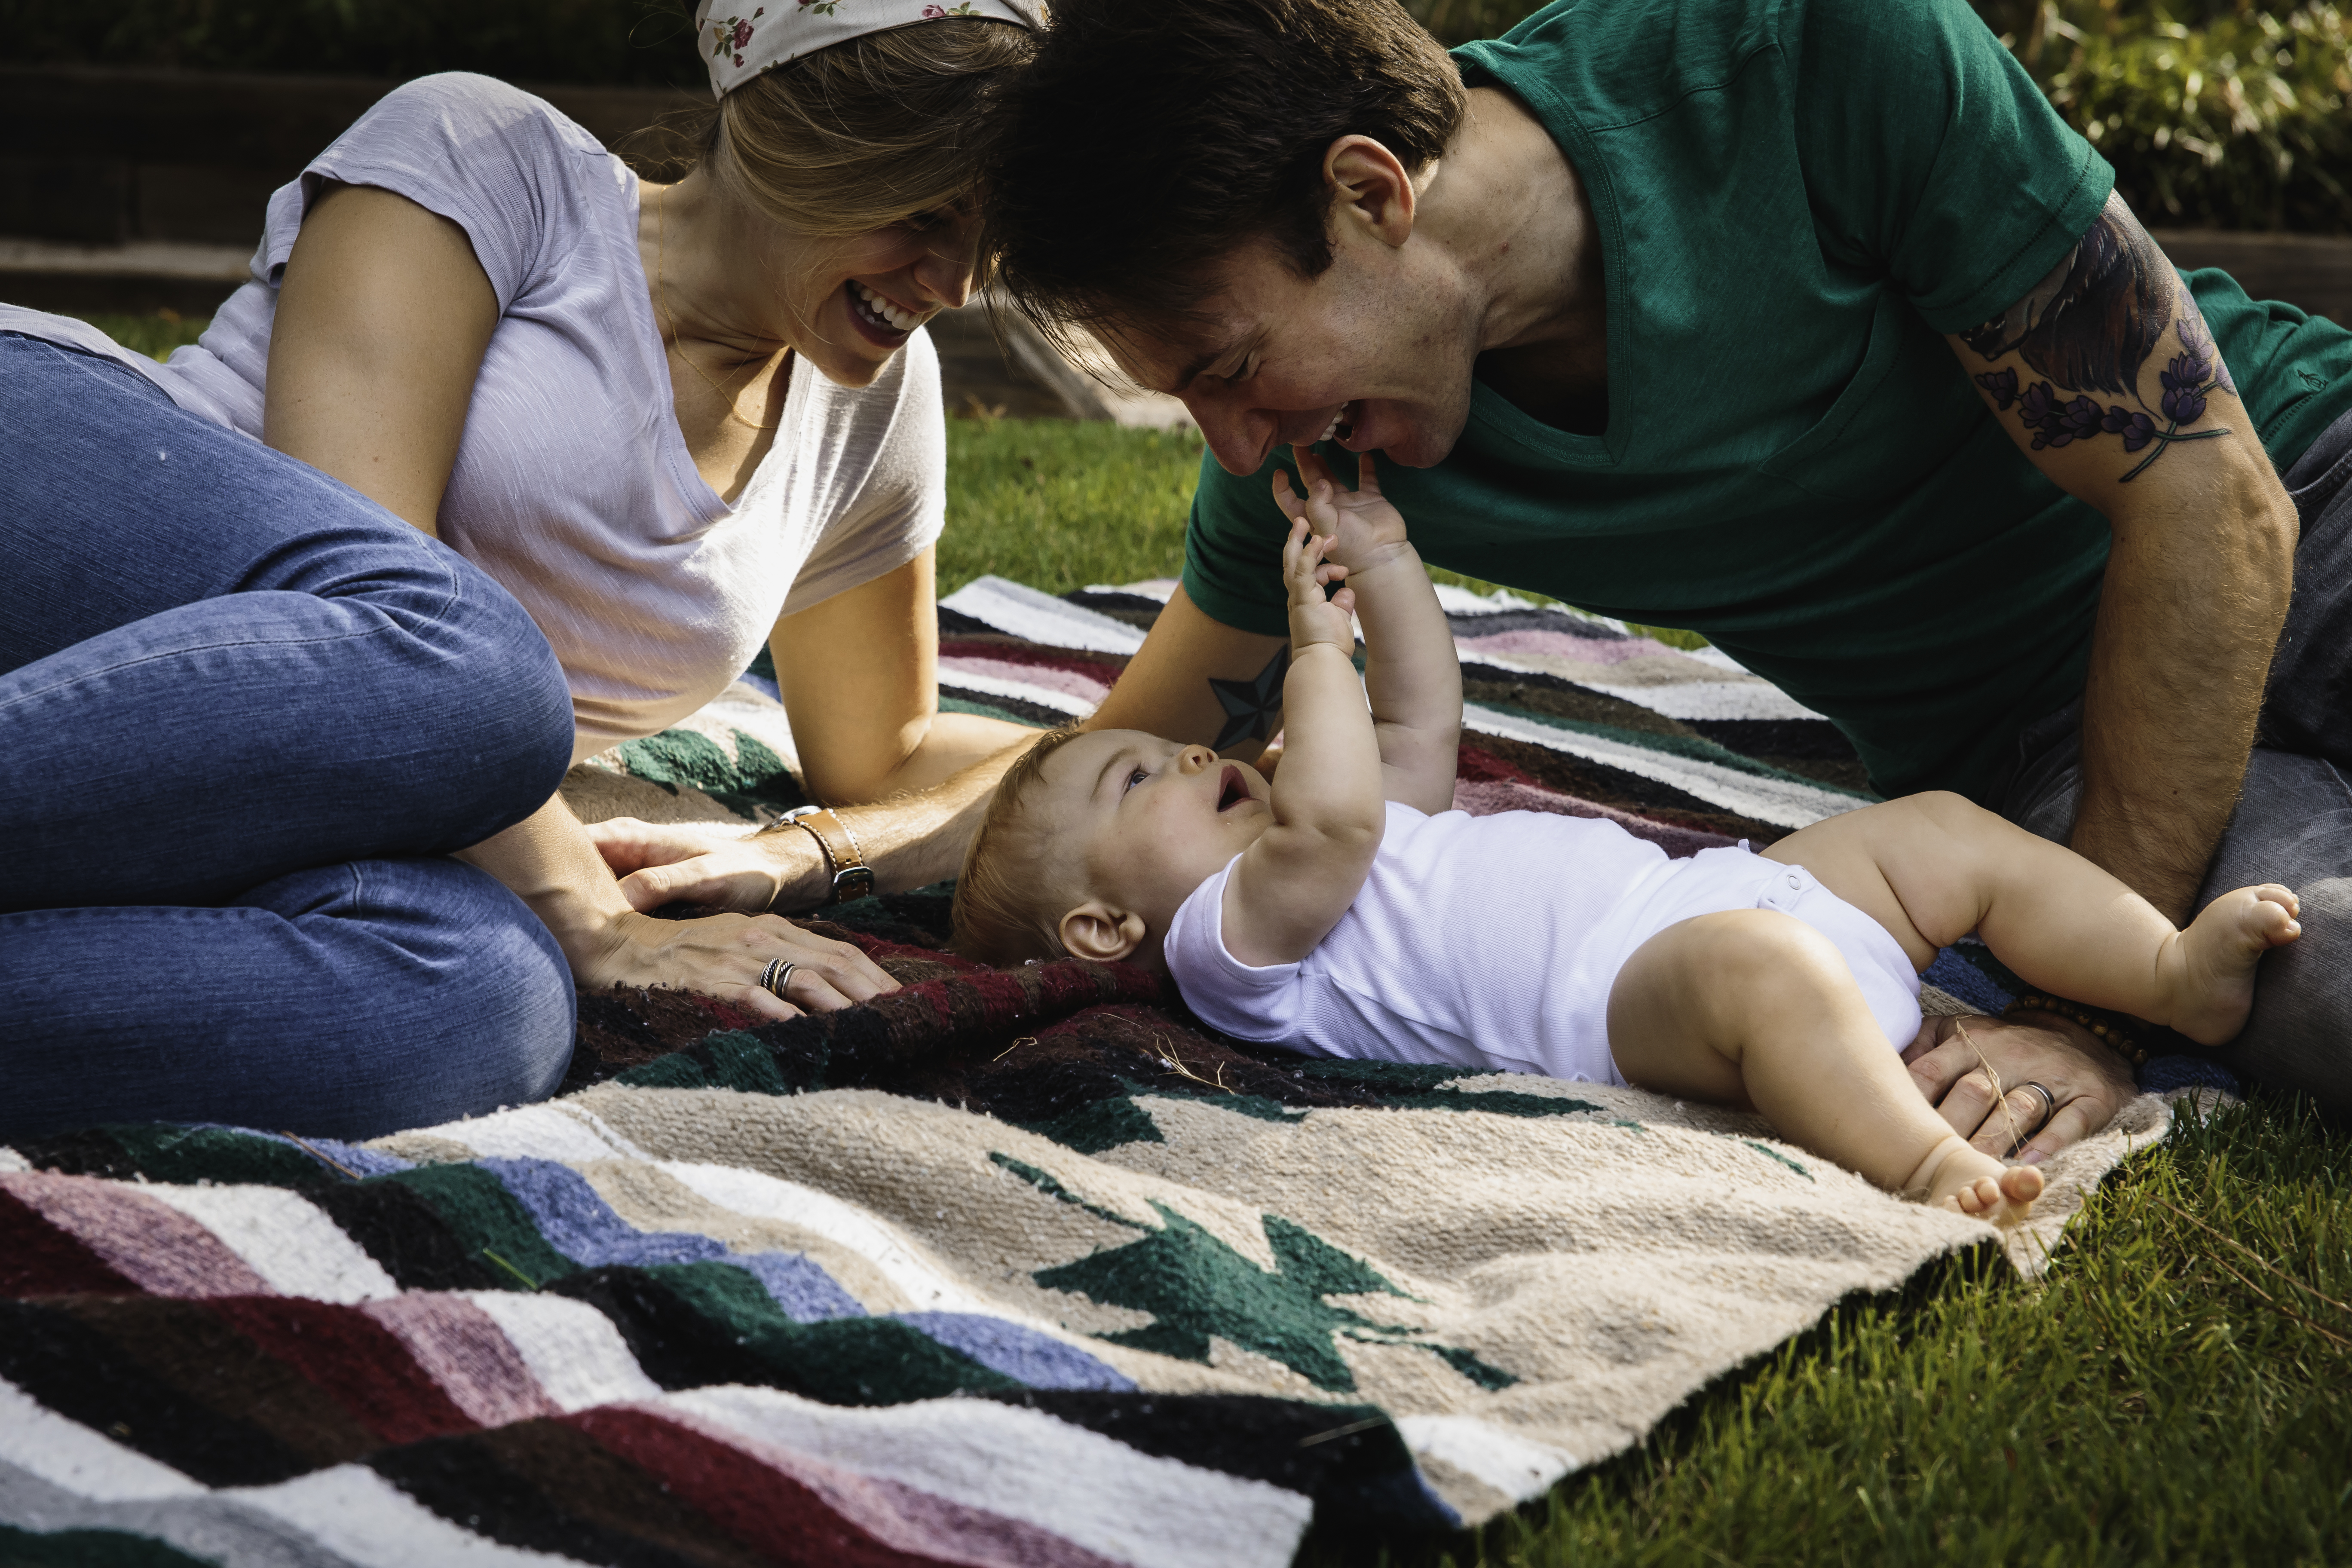 Mom and Dad on a blanket with baby